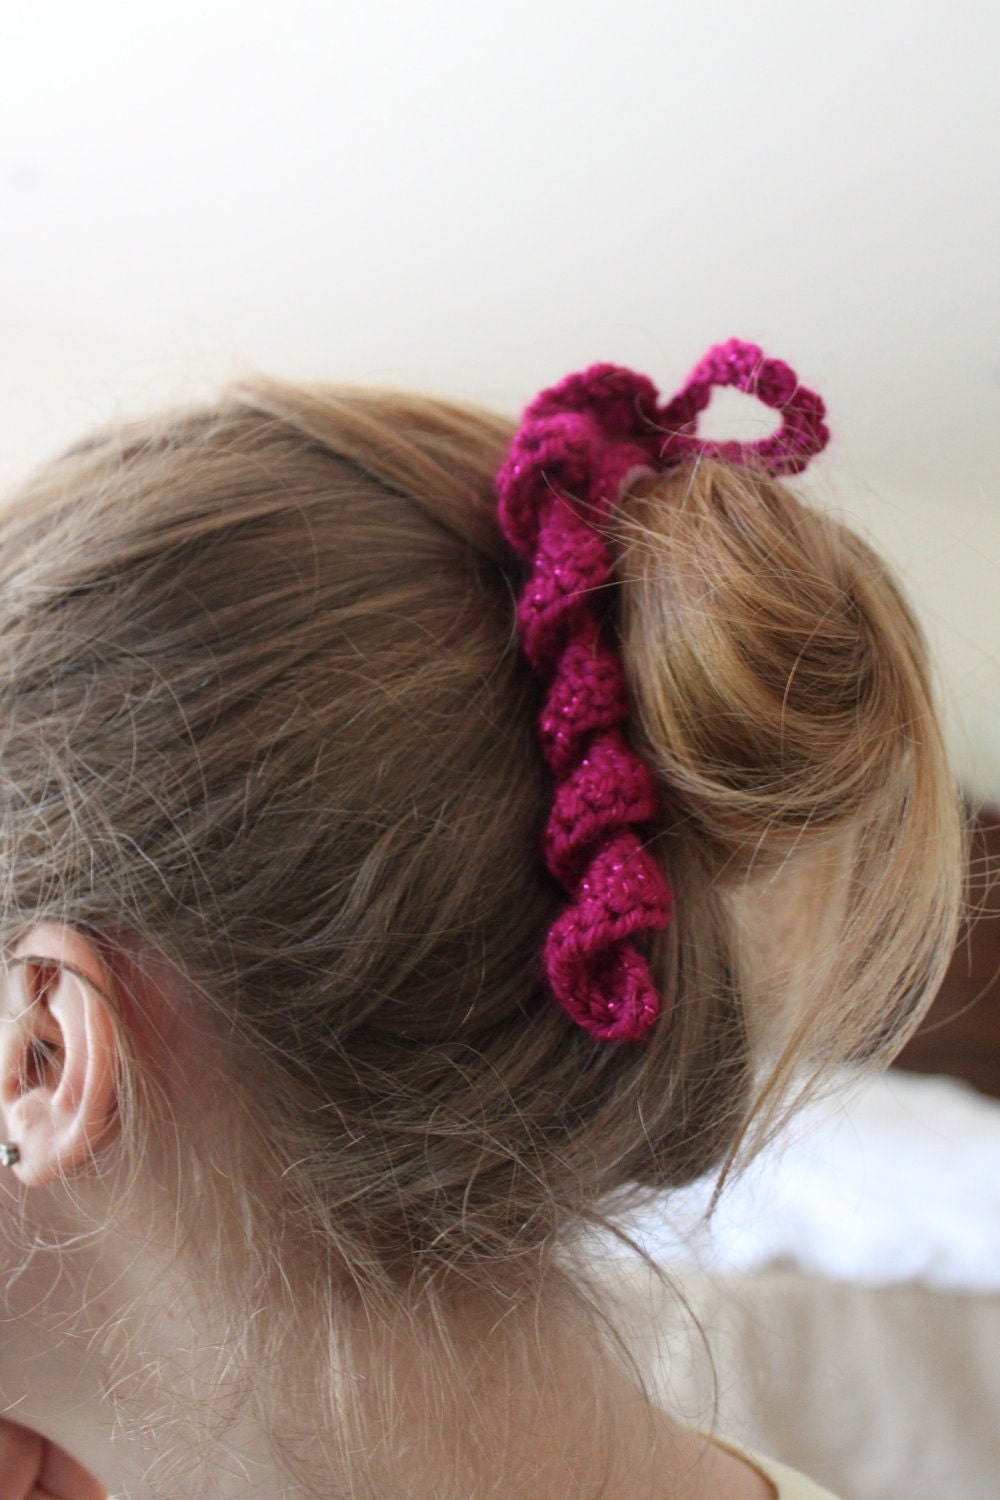 Crochet Hair Spirals : Items similar to Crocheted Spiral Hair Tie on Etsy